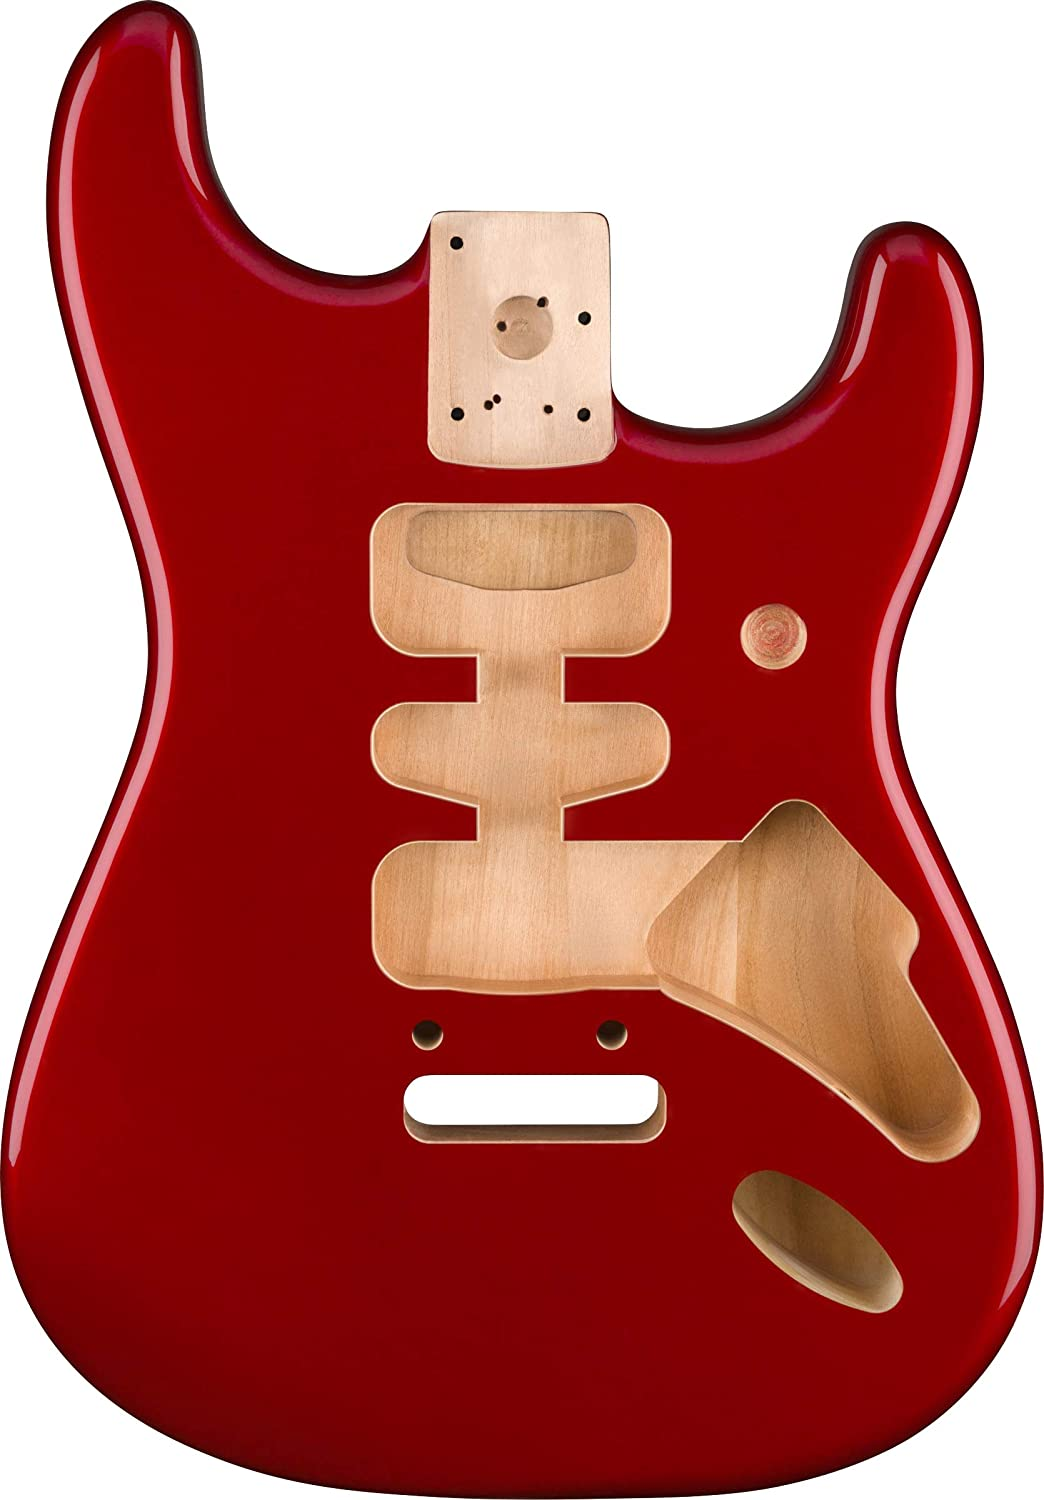 Fender Deluxe Stratocaster Body - Alder - Candy Apple Red